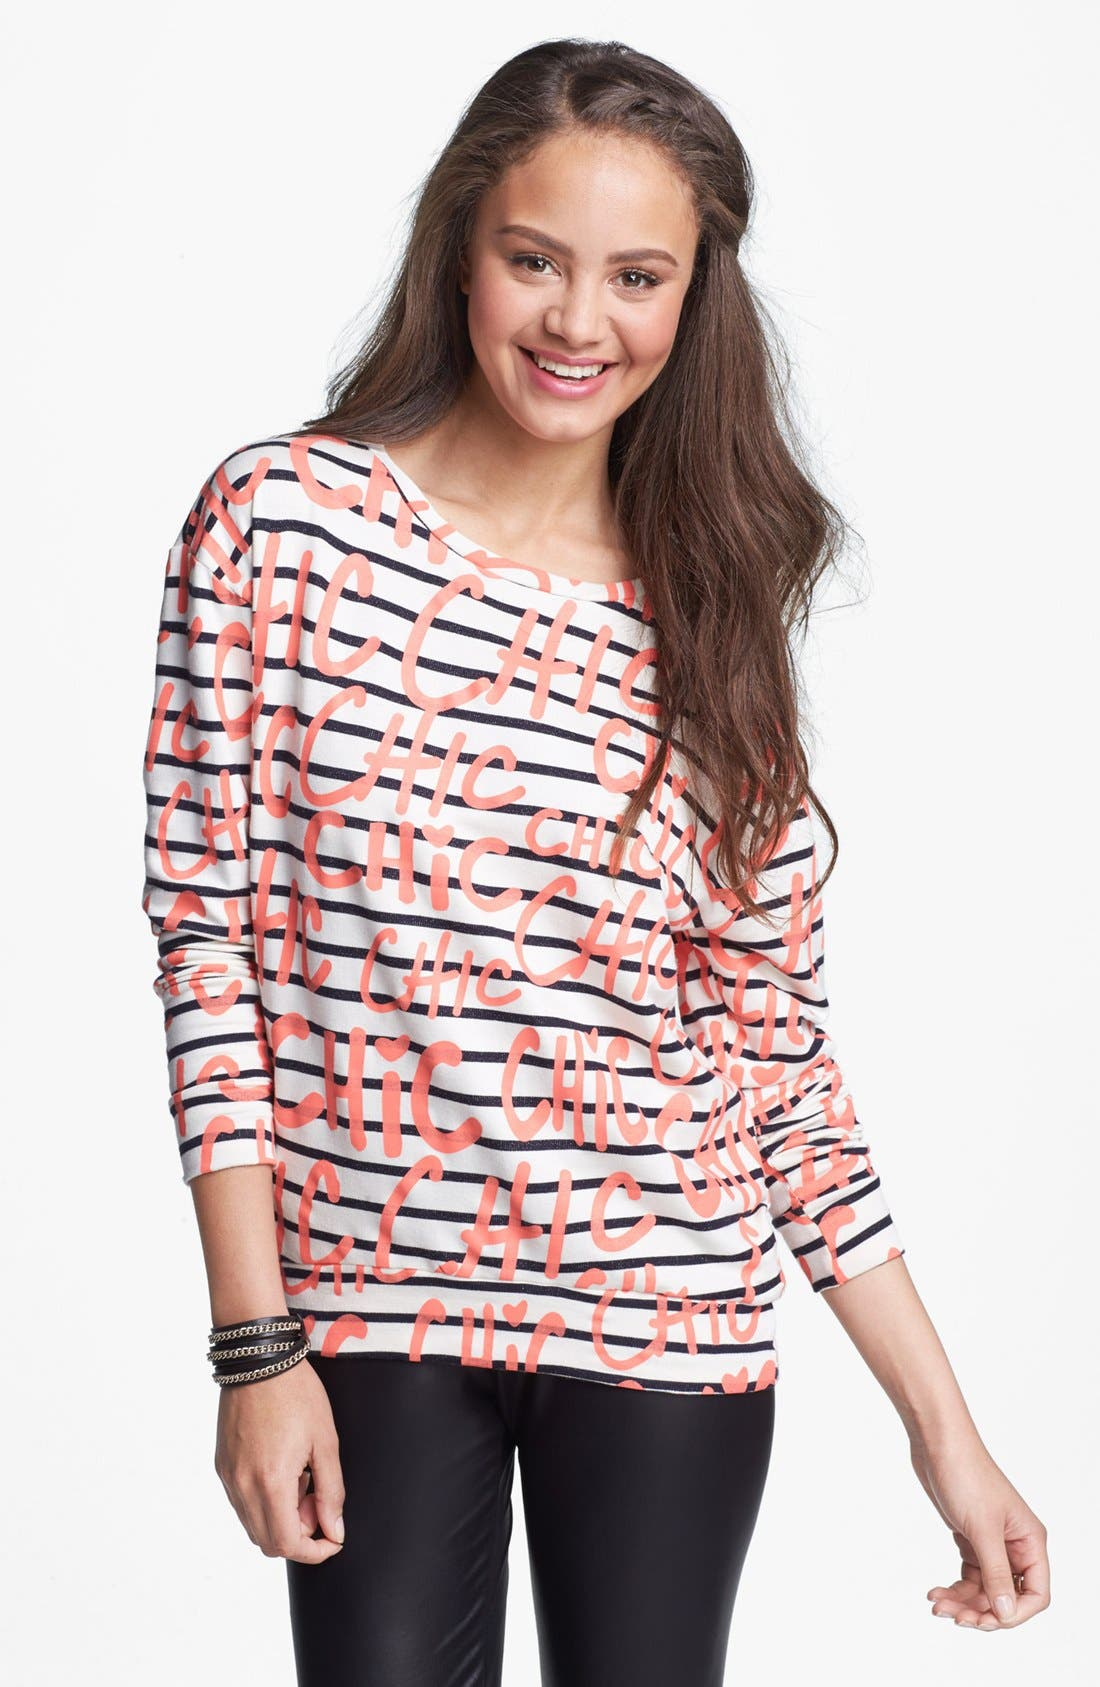 Alternate Image 1 Selected - Ten Sixty Sherman 'Chic' Stripe Sweatshirt (Juniors)